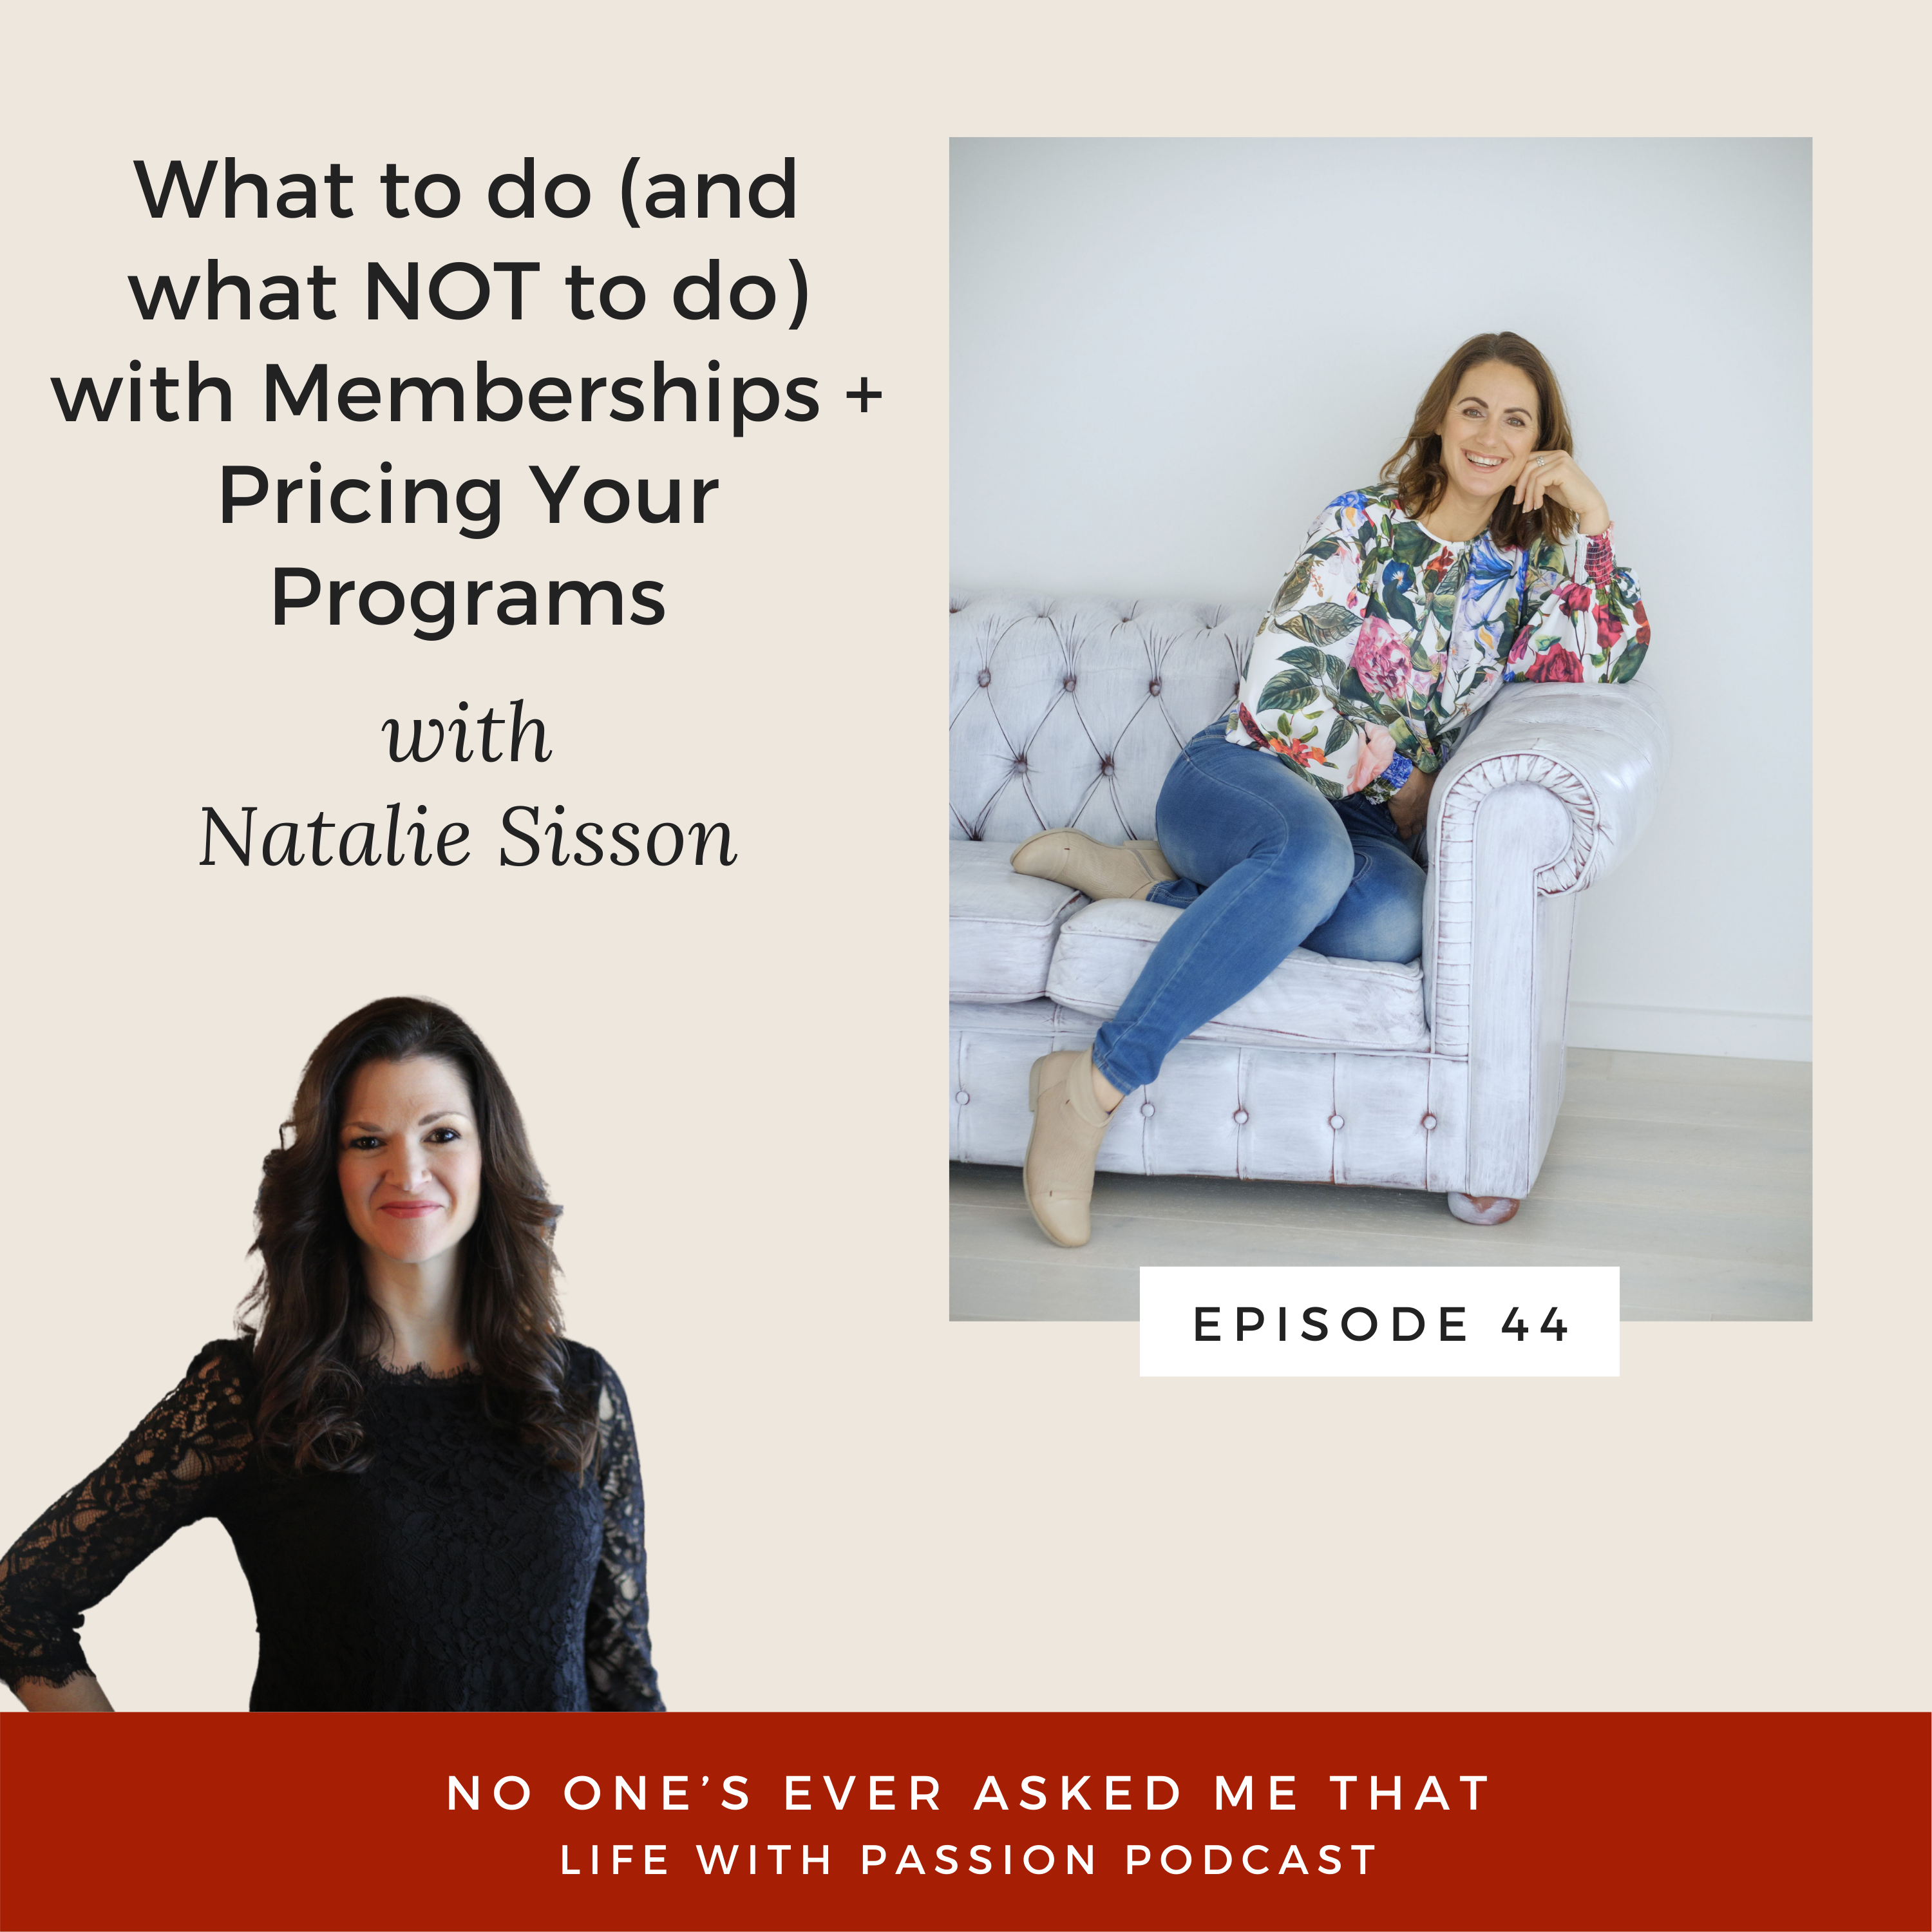 What to do (+ not do) with Memberships + Pricing Your Programs with Natalie Sisson